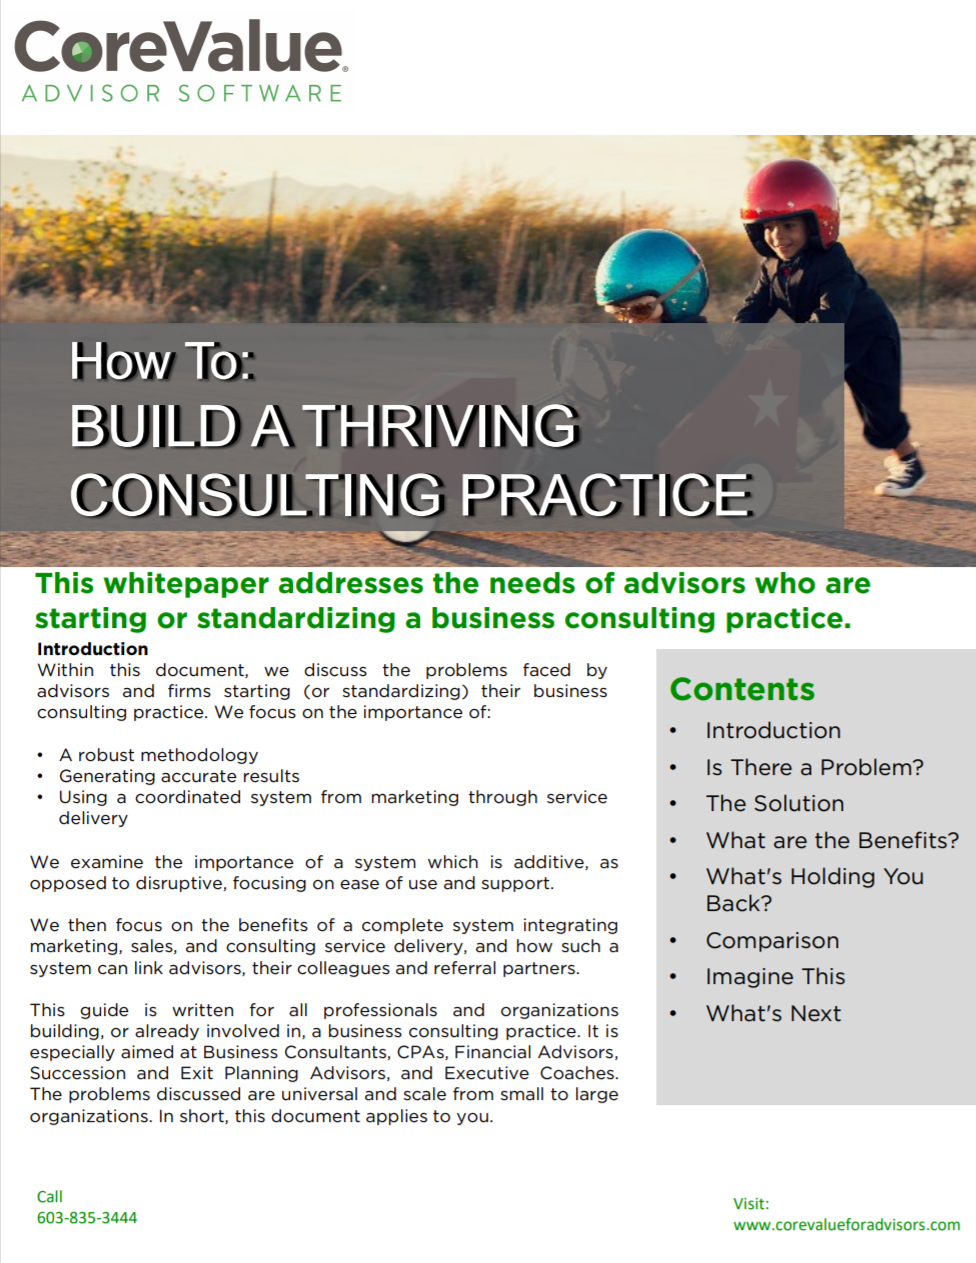 Building a Thriving Consulting Practice